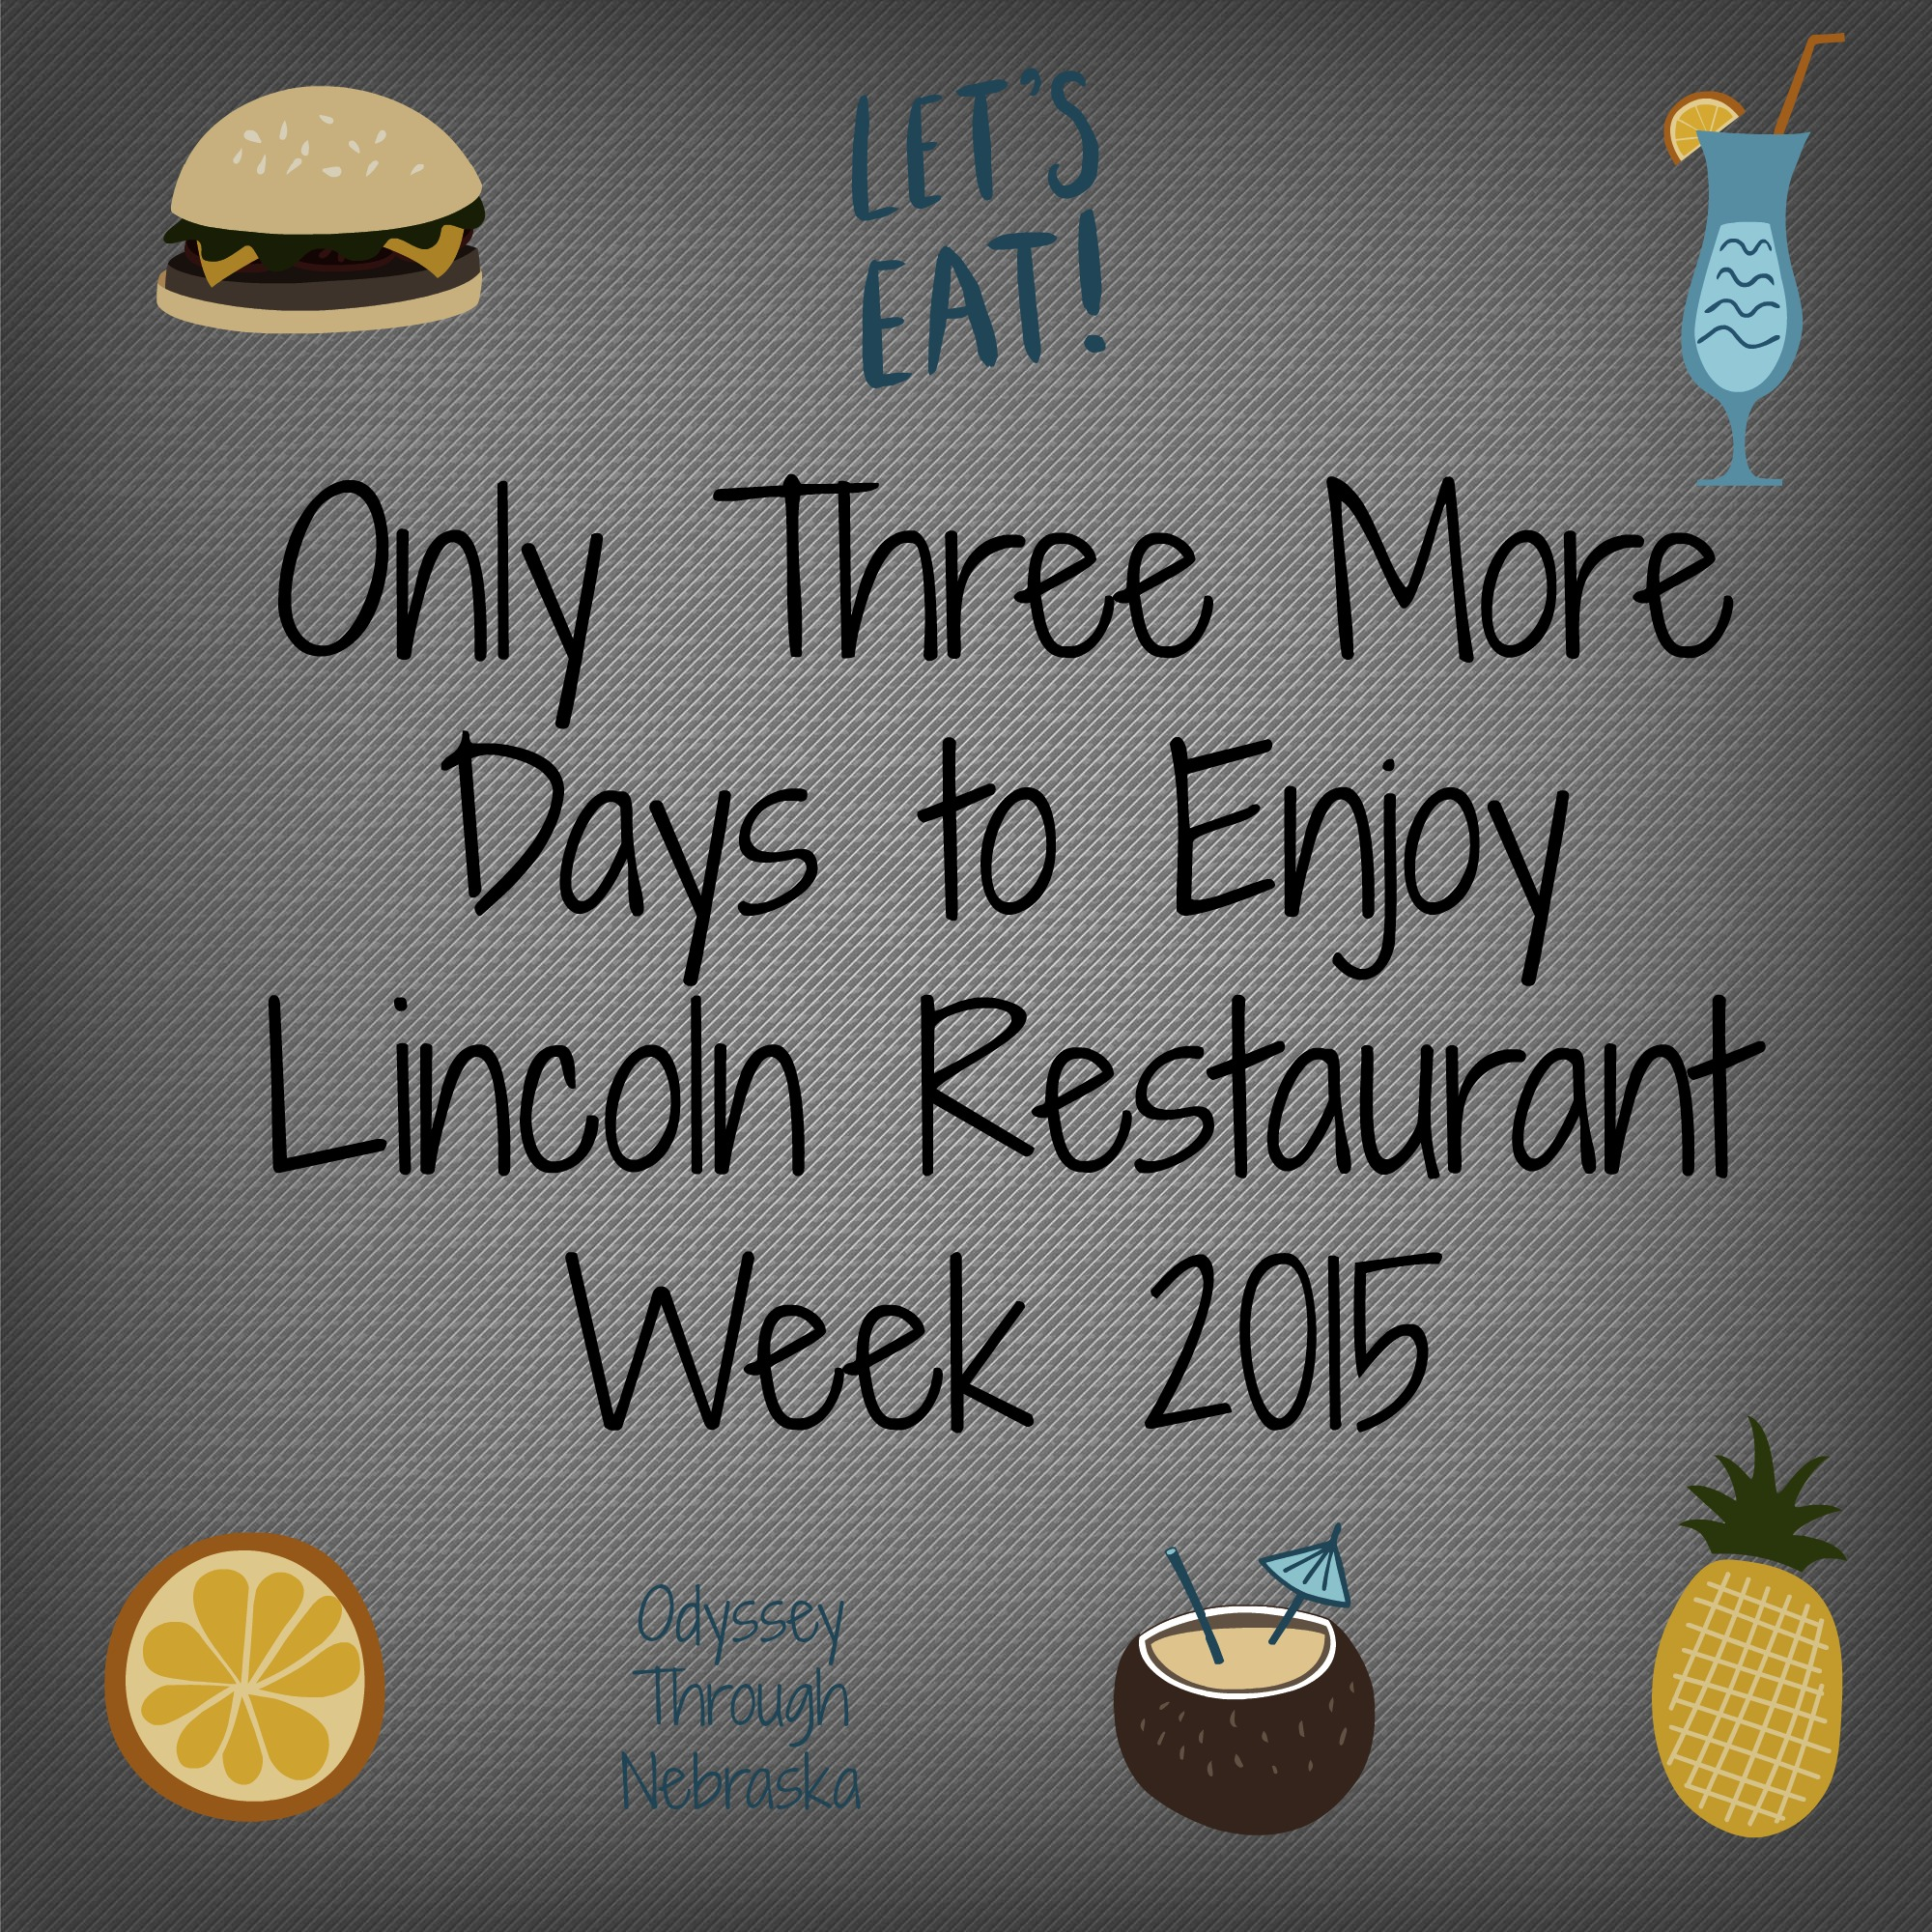 Lincoln Restaurant Week 2015